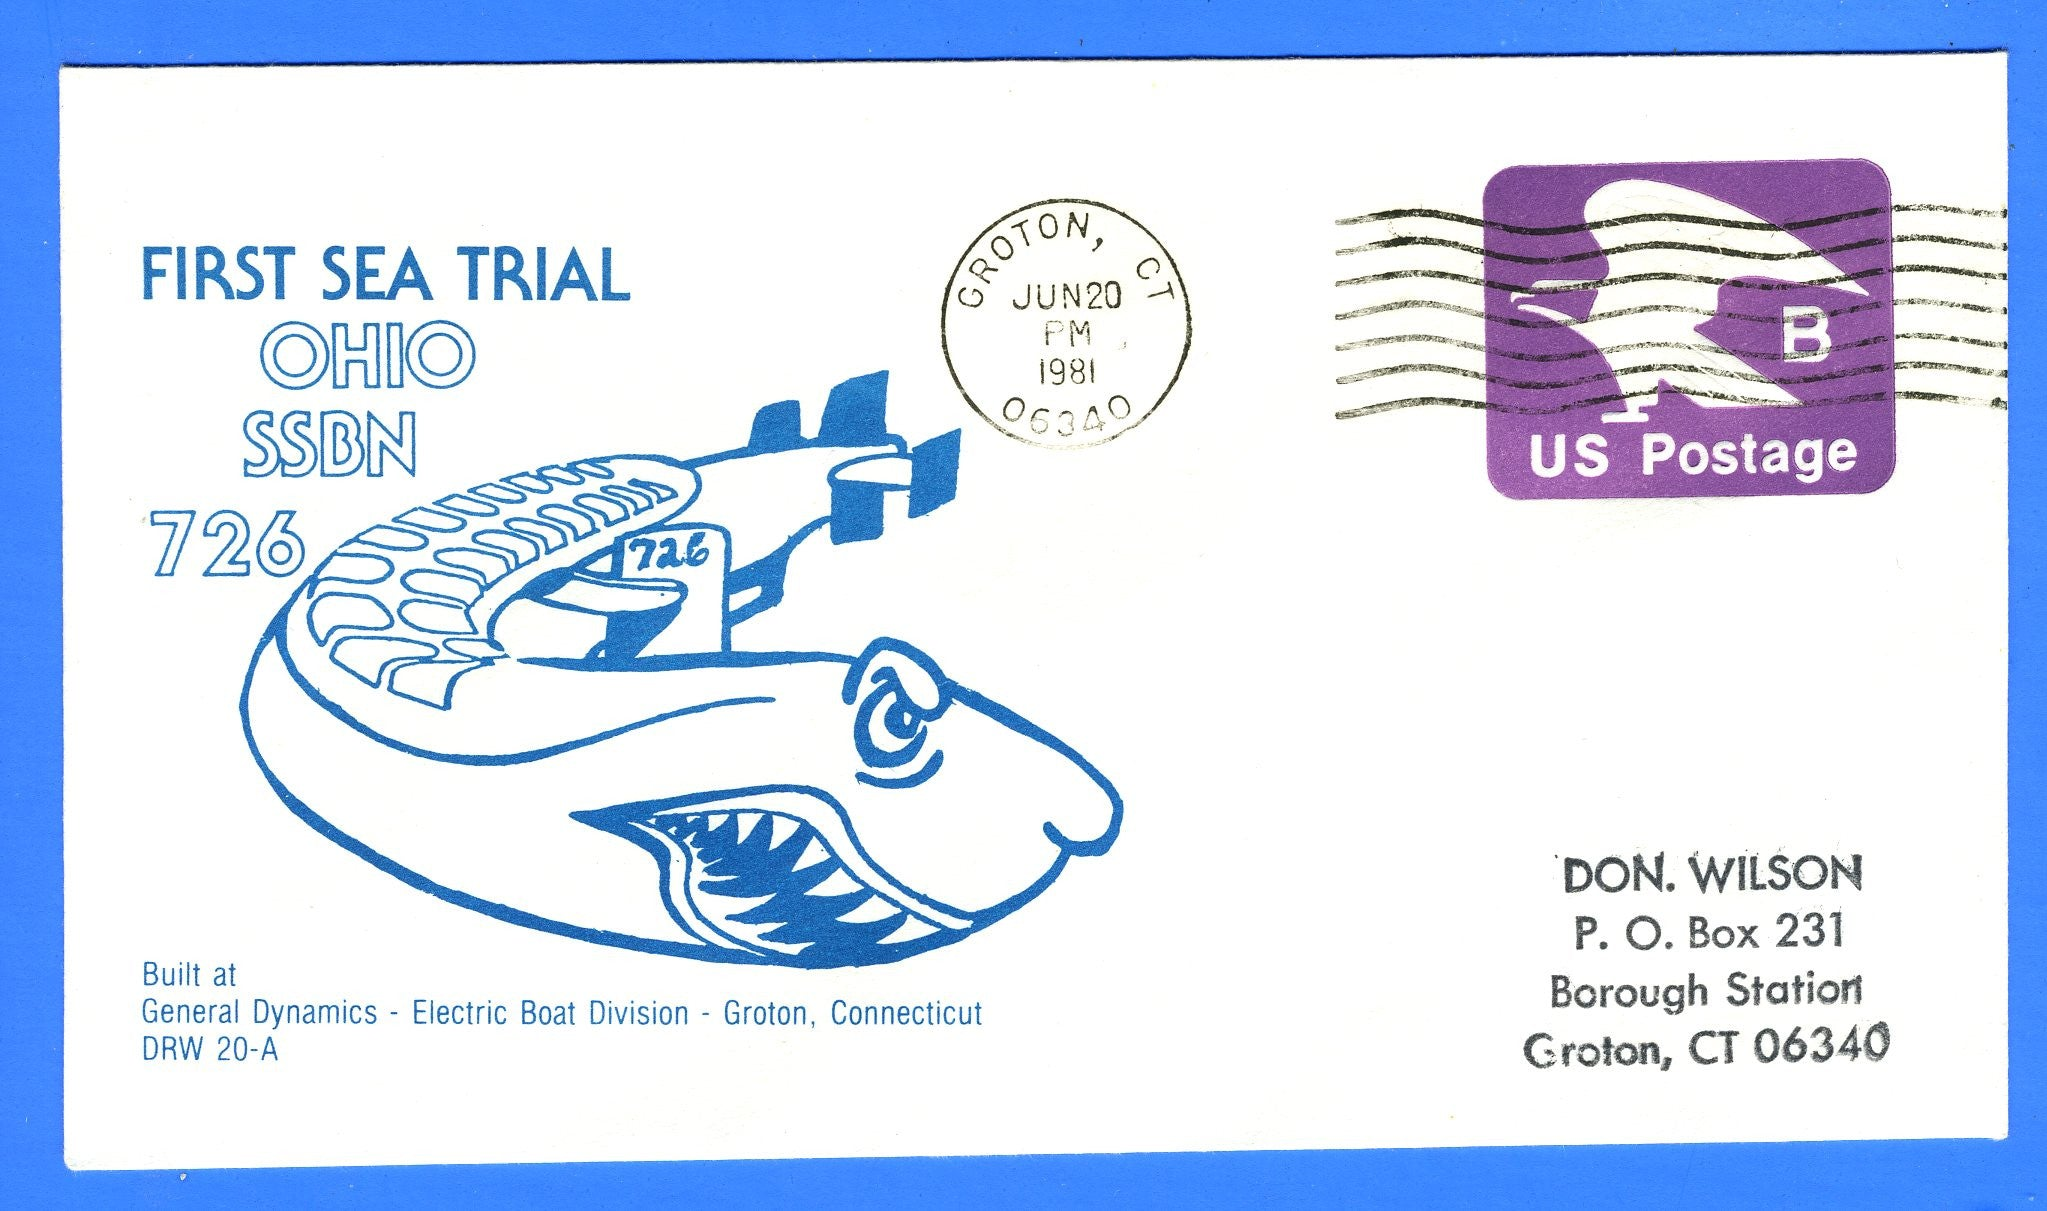 USS Ohio SSBN-726 First Sea Trial June 20, 1981 - DRW 20A